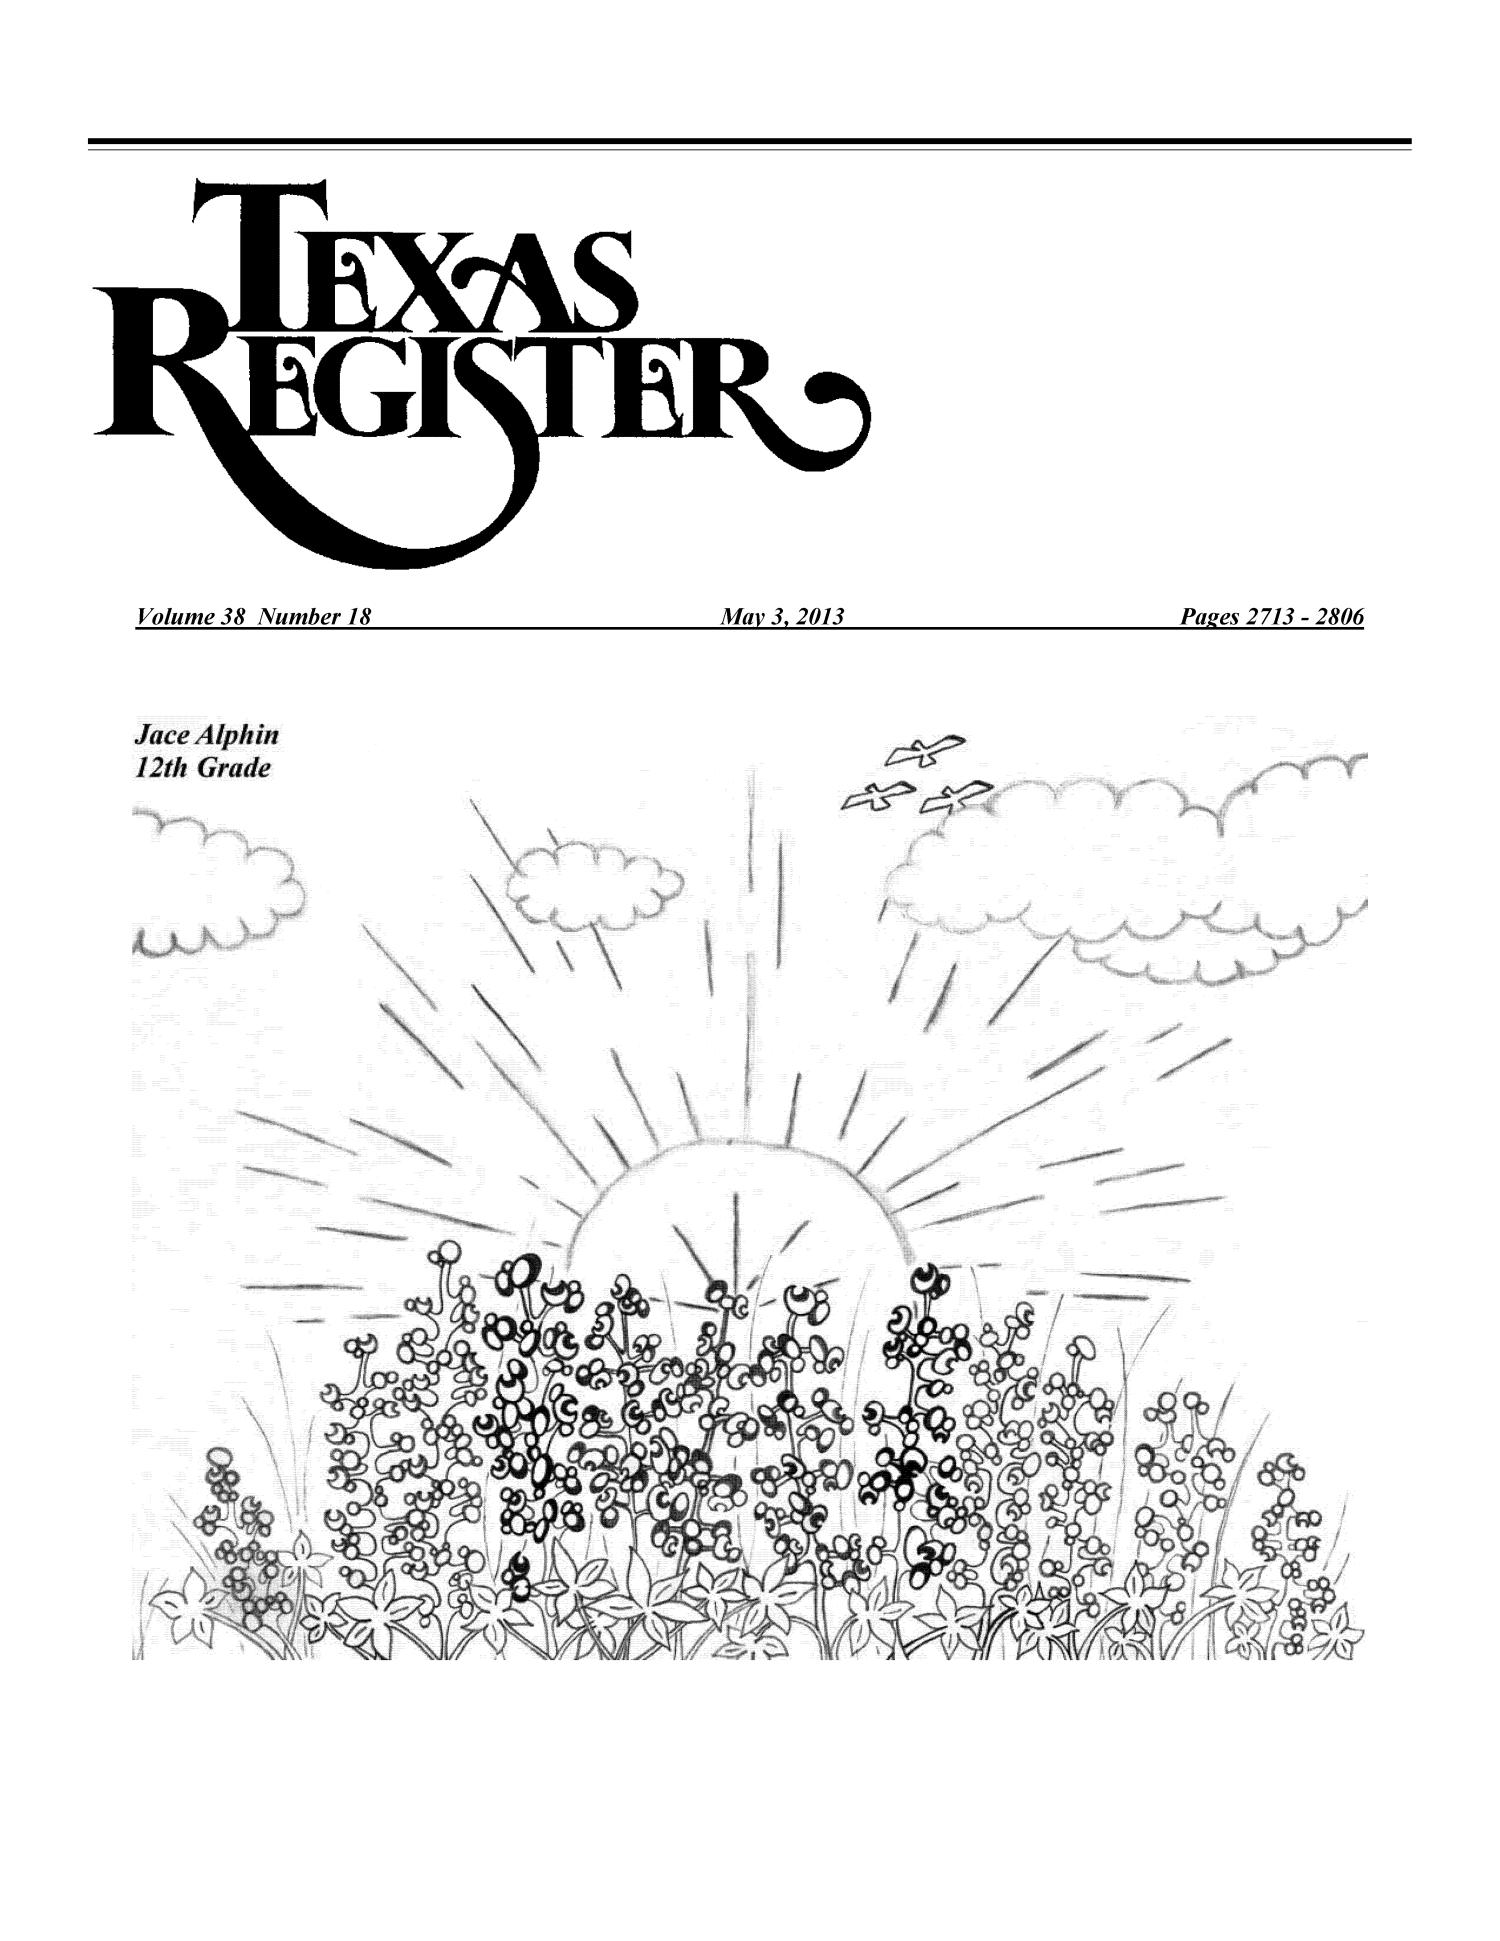 Texas Register, Volume 38, Number 18, Pages 2713-2806, May 3, 2013                                                                                                      Title Page